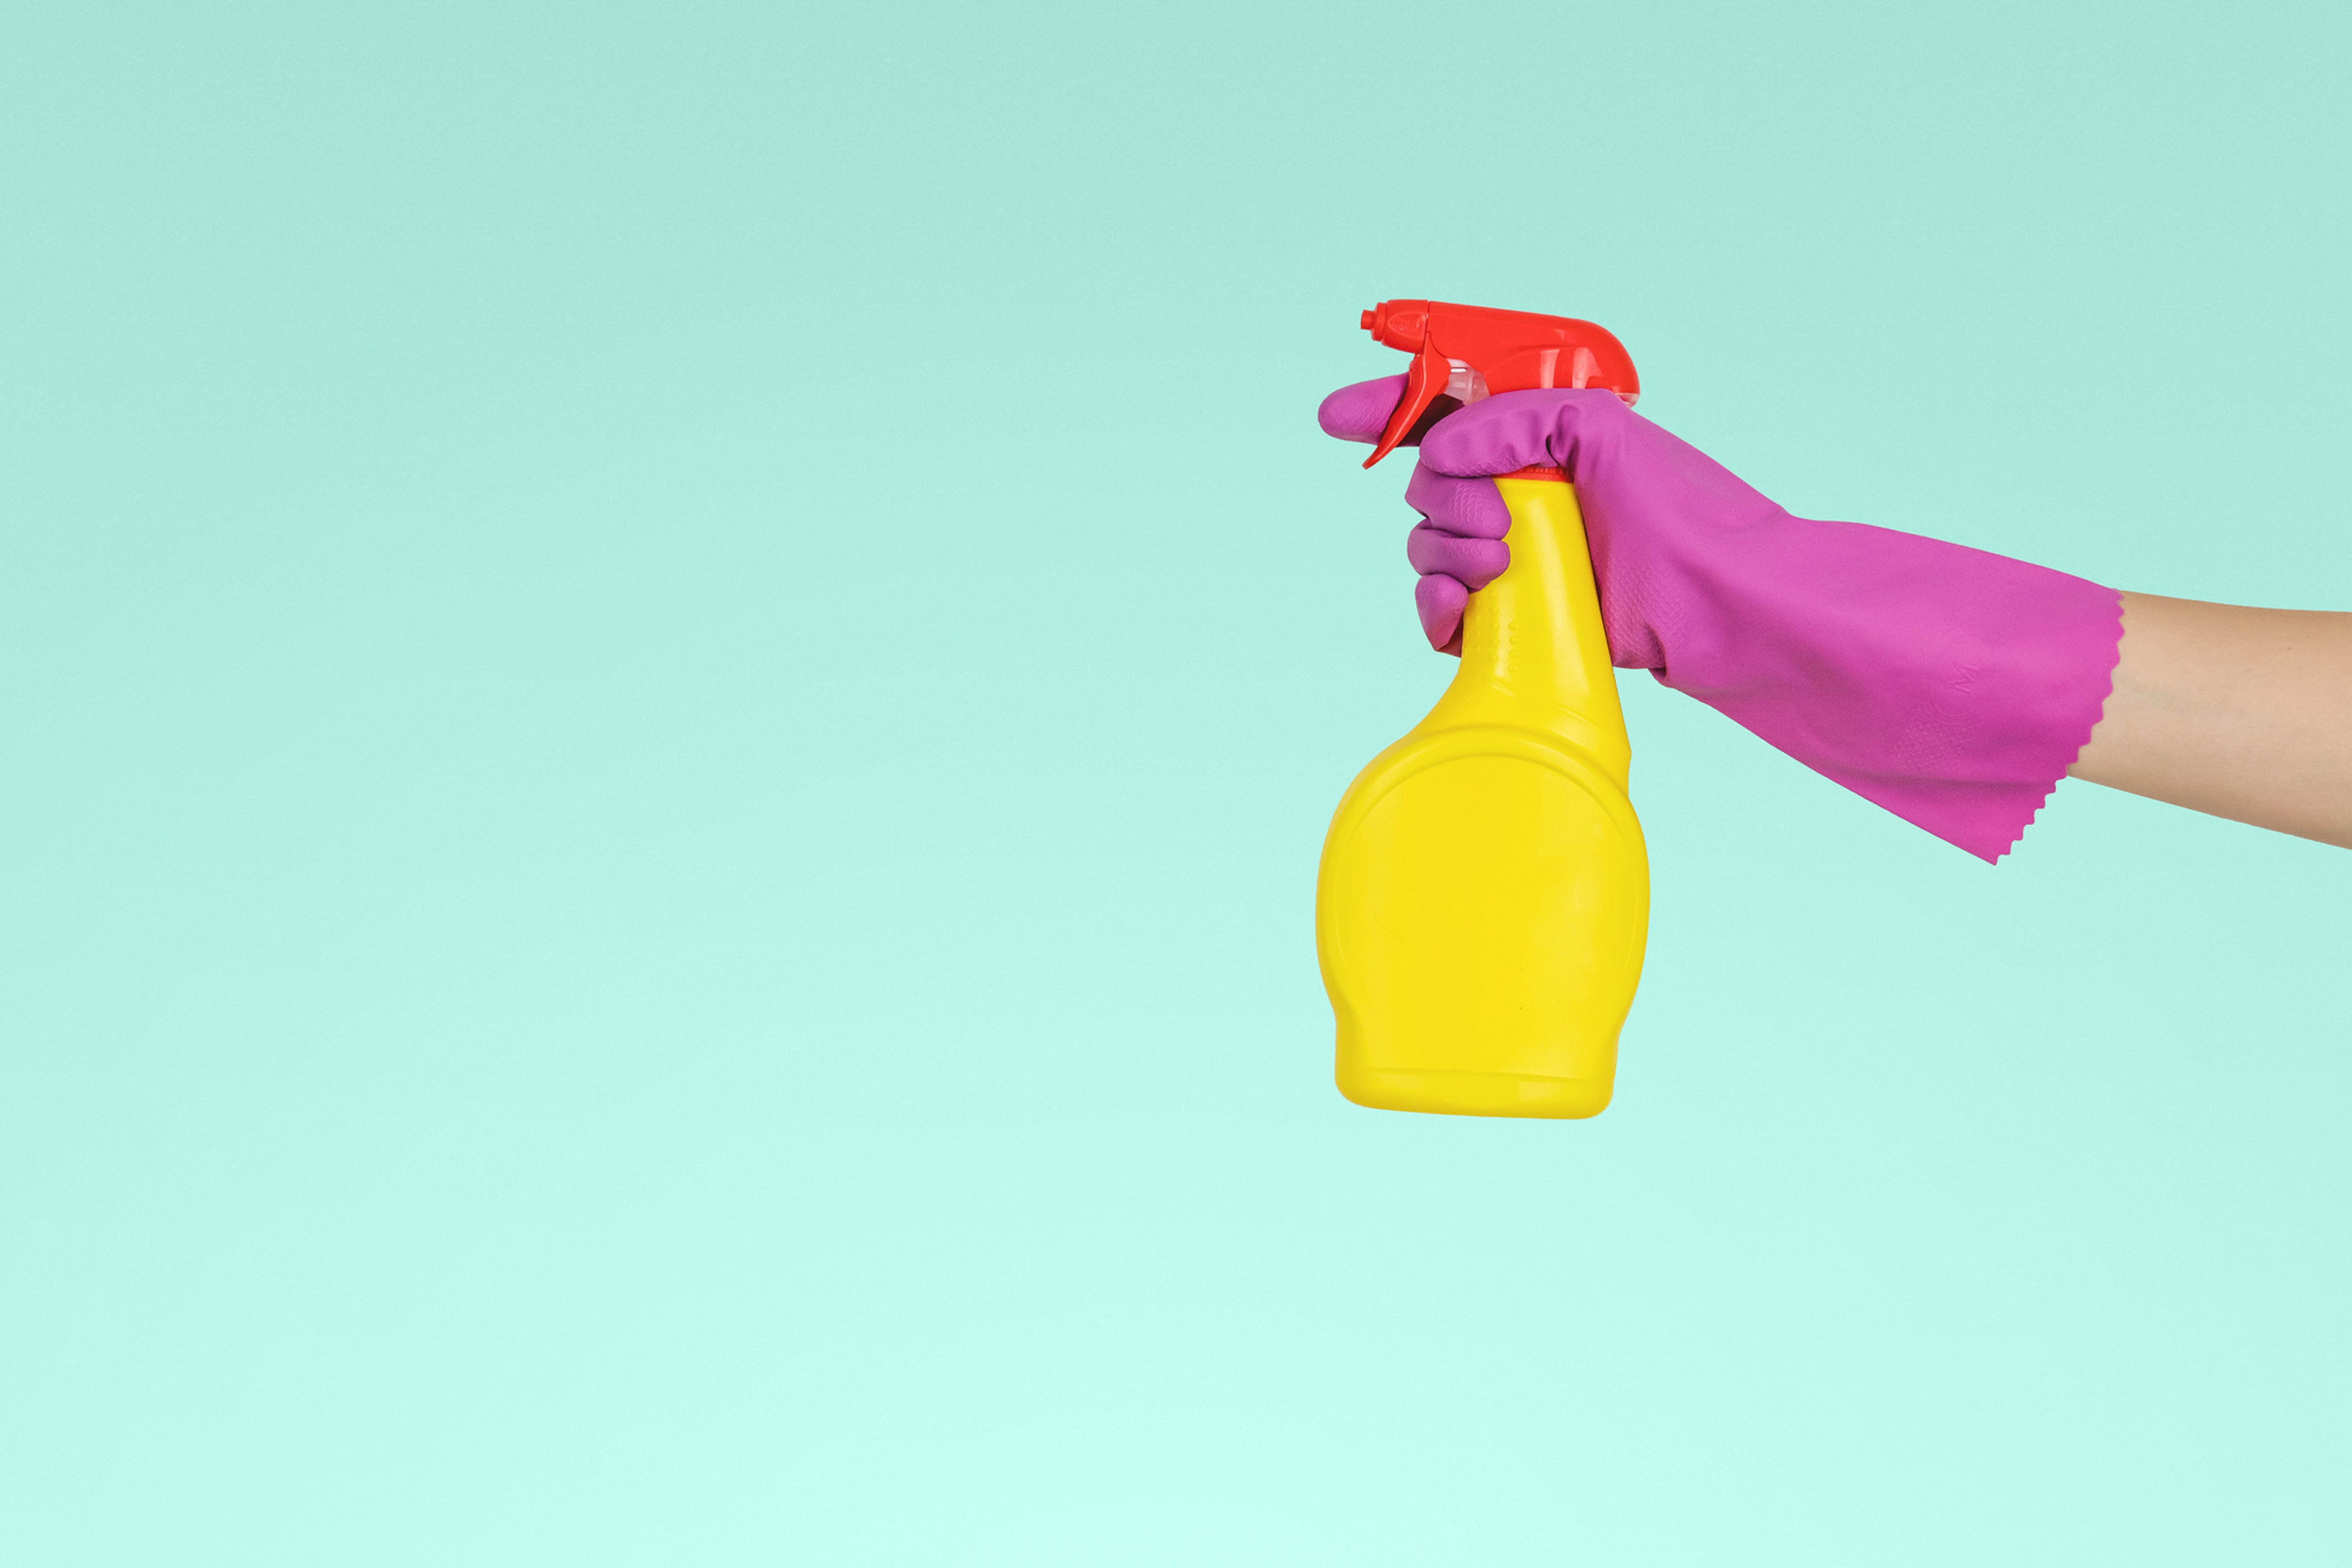 Regular House Cleaning Service